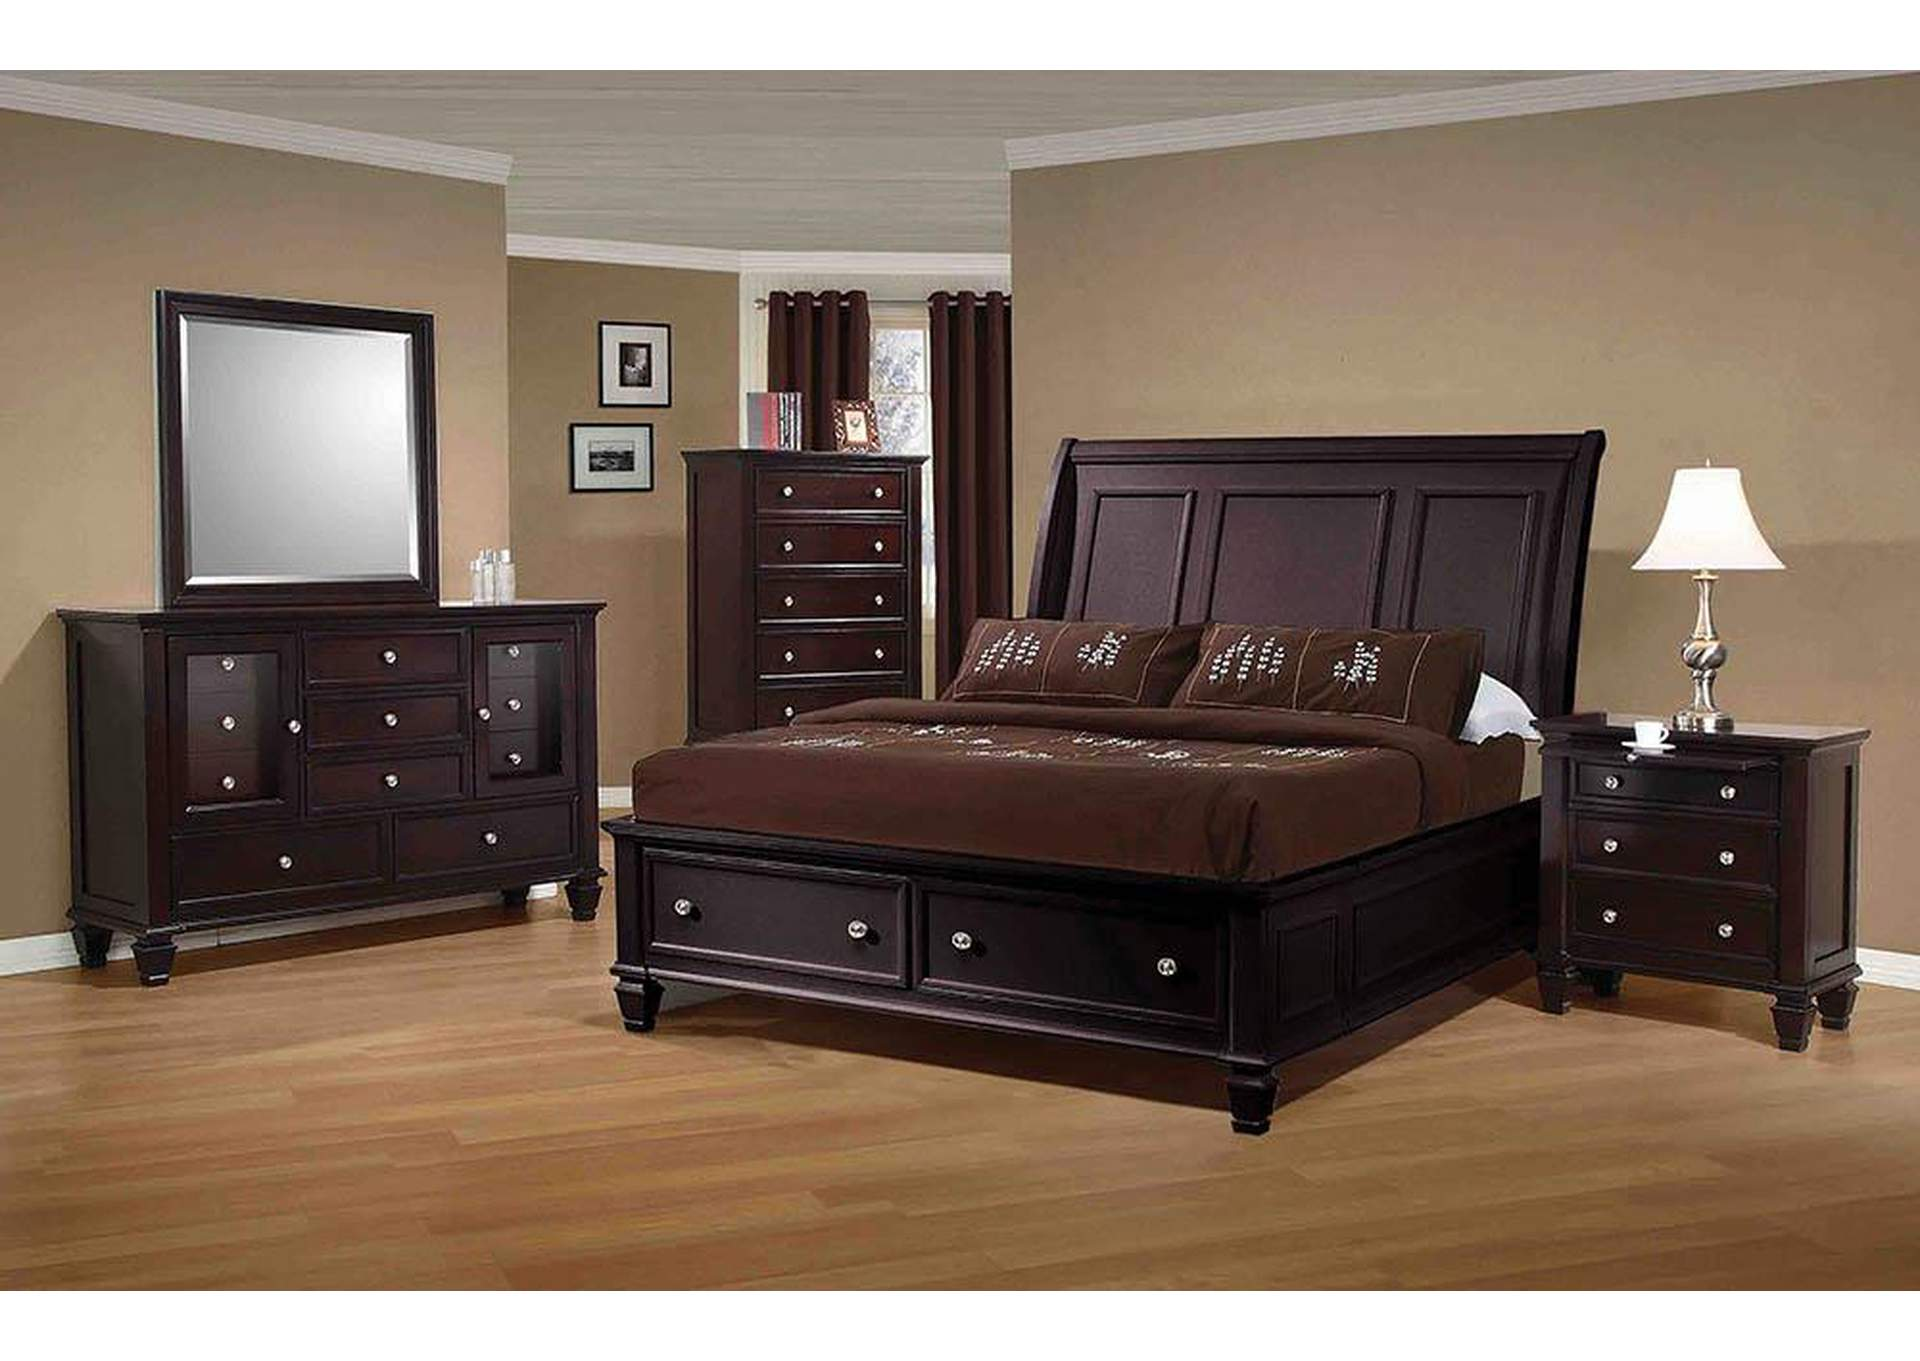 Sandy Beach Cappuccino Eastern King Storage Sleigh Bed,Coaster Furniture